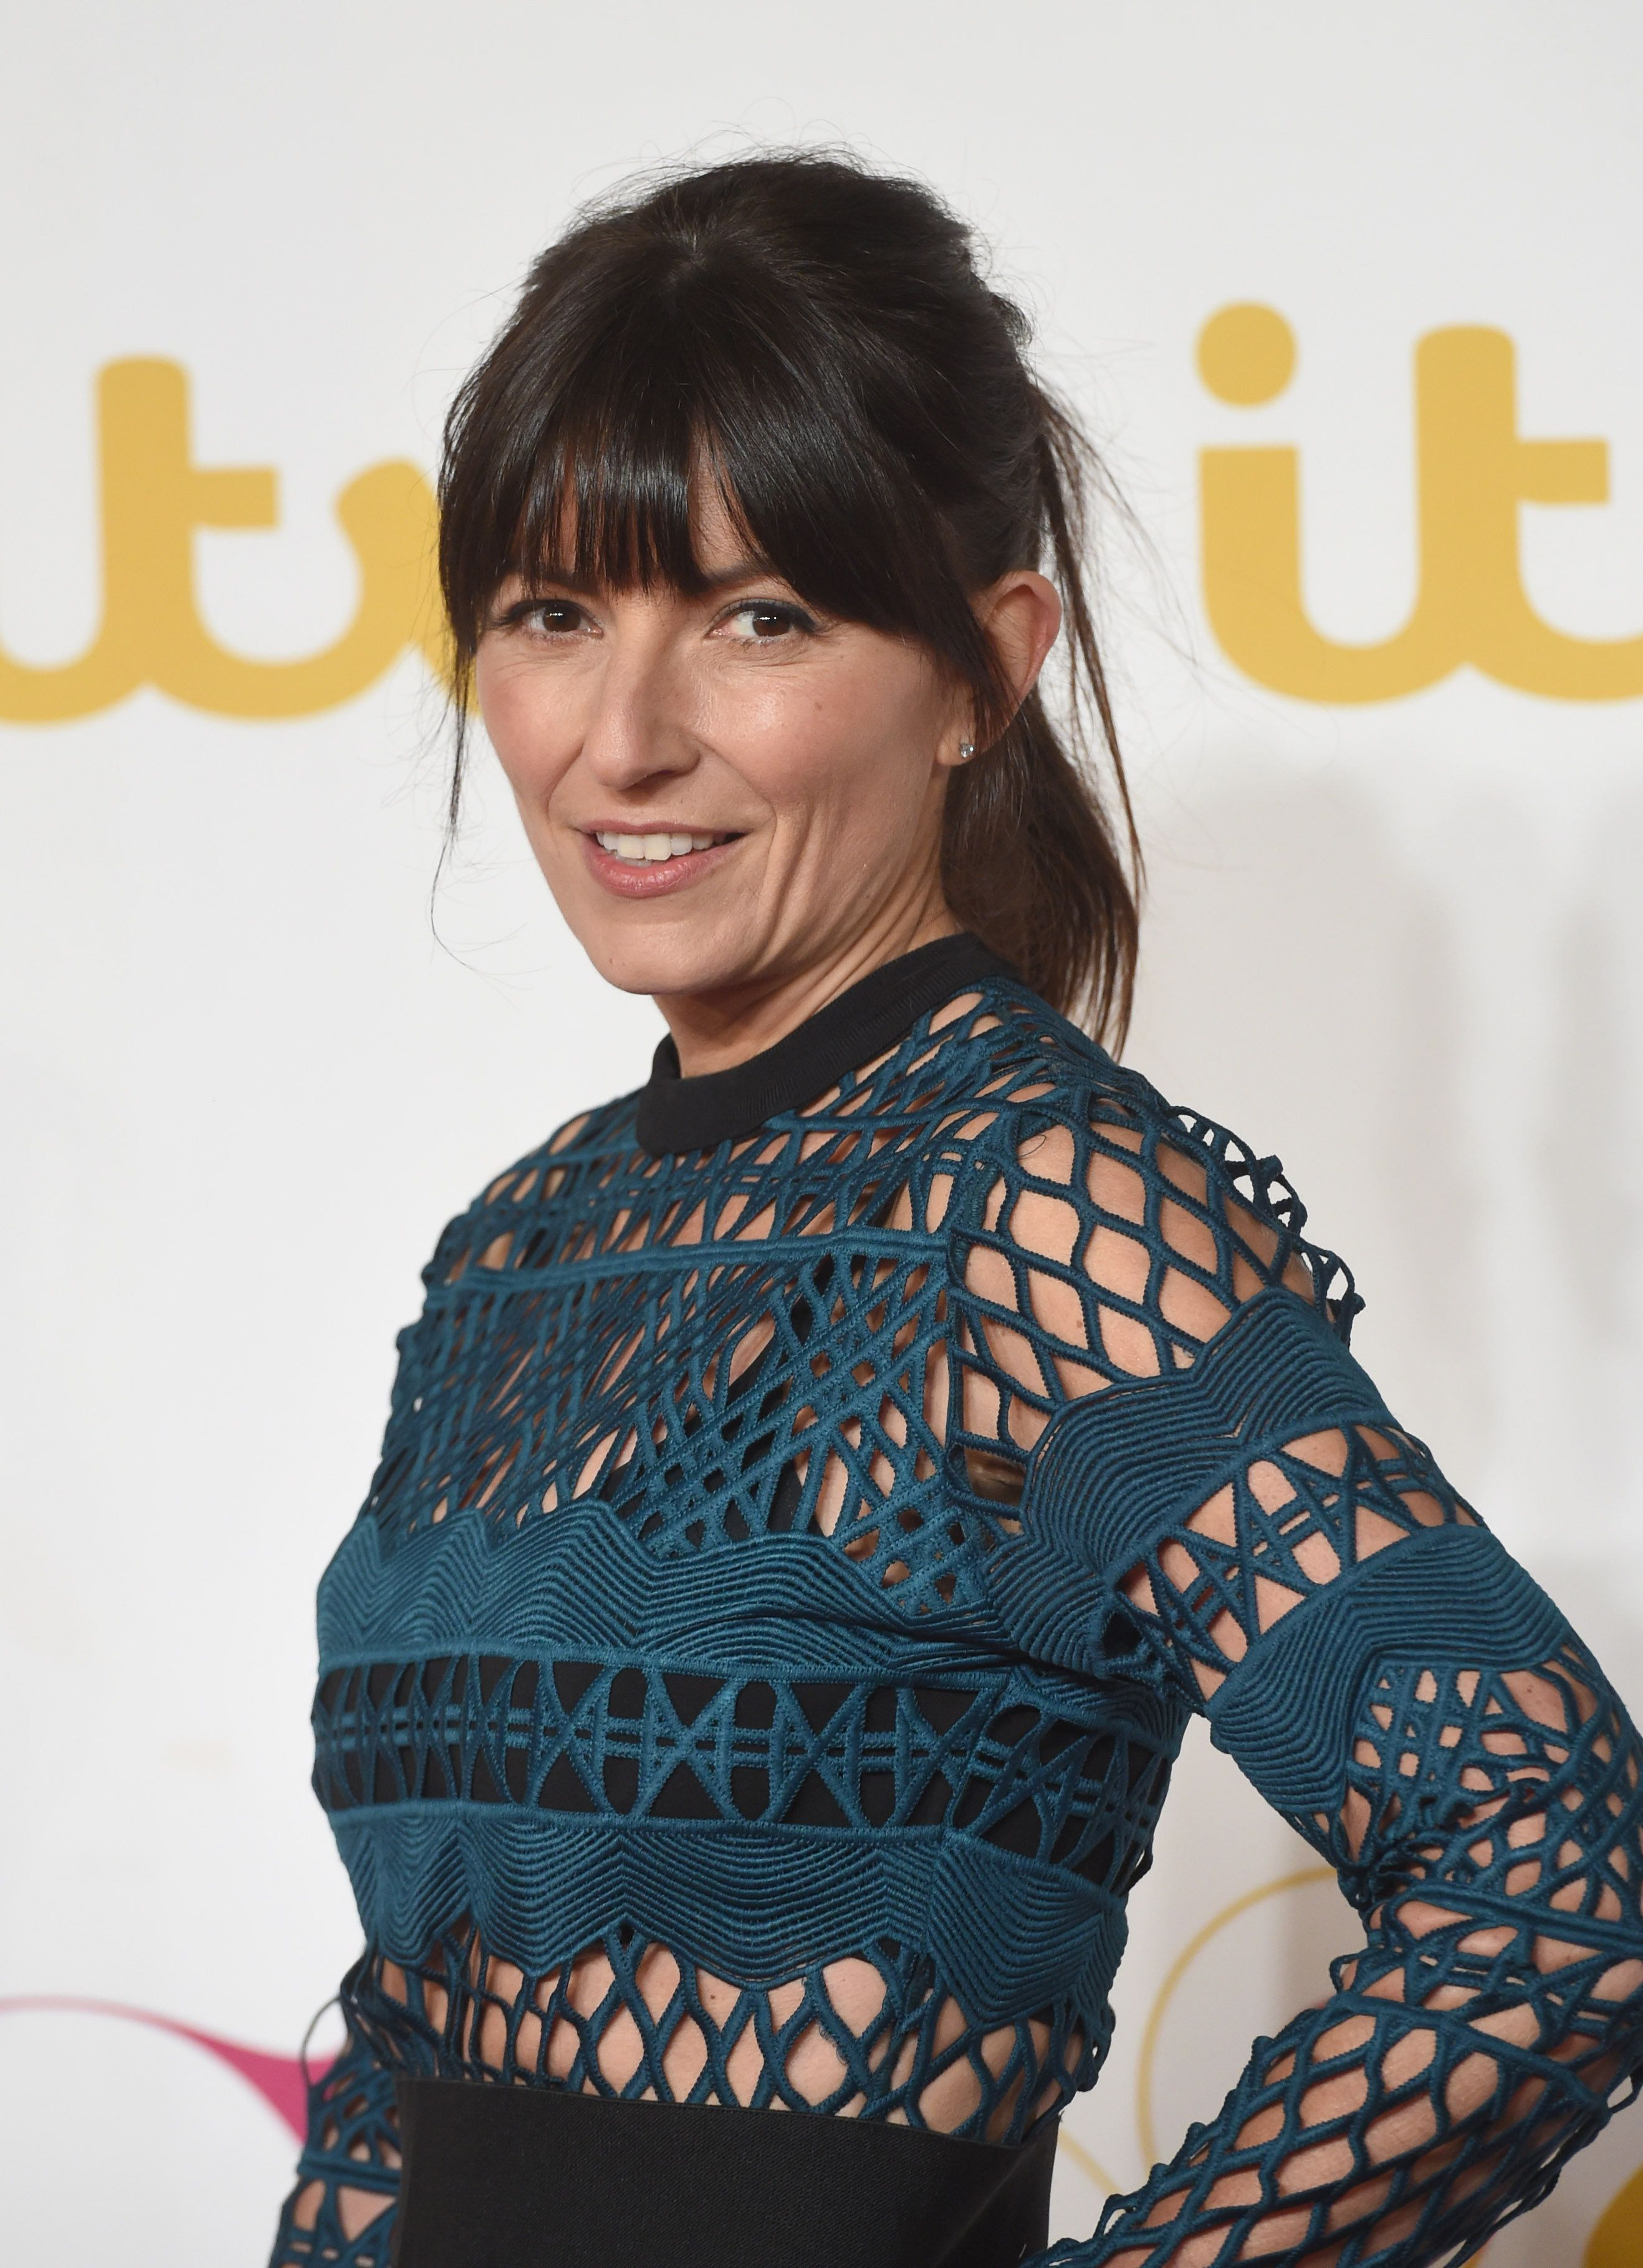 Davina McCall On Why Ageing Is Empowering: 'I Genuinely Care A Lot Less About What People